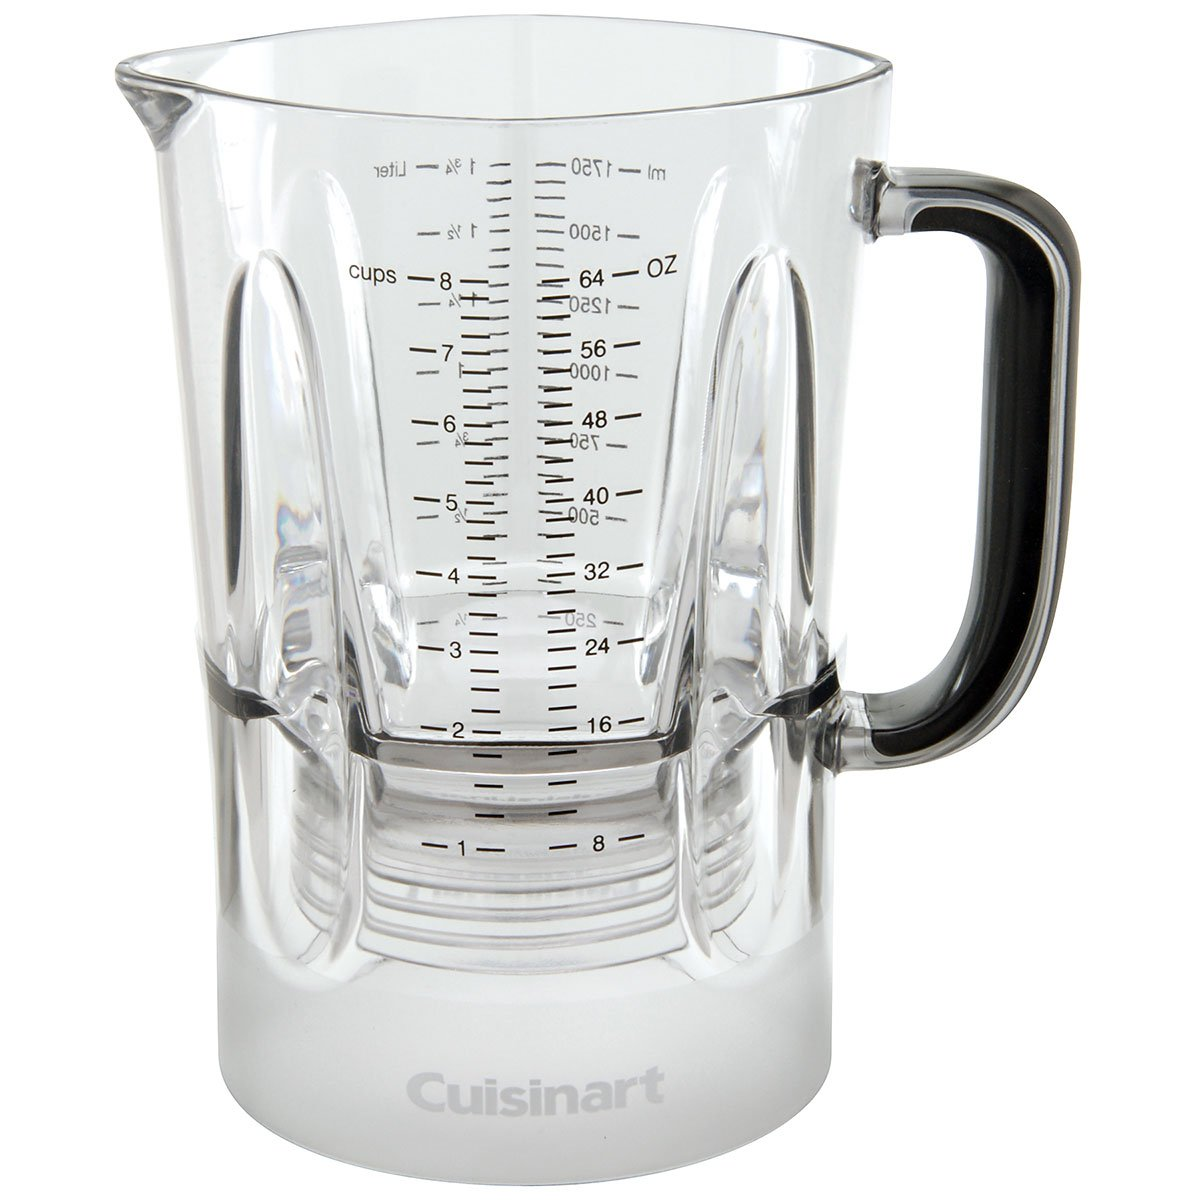 Cuisinart CBT-1000JAR BPA-free copolyester blender jar, 64 ounces.